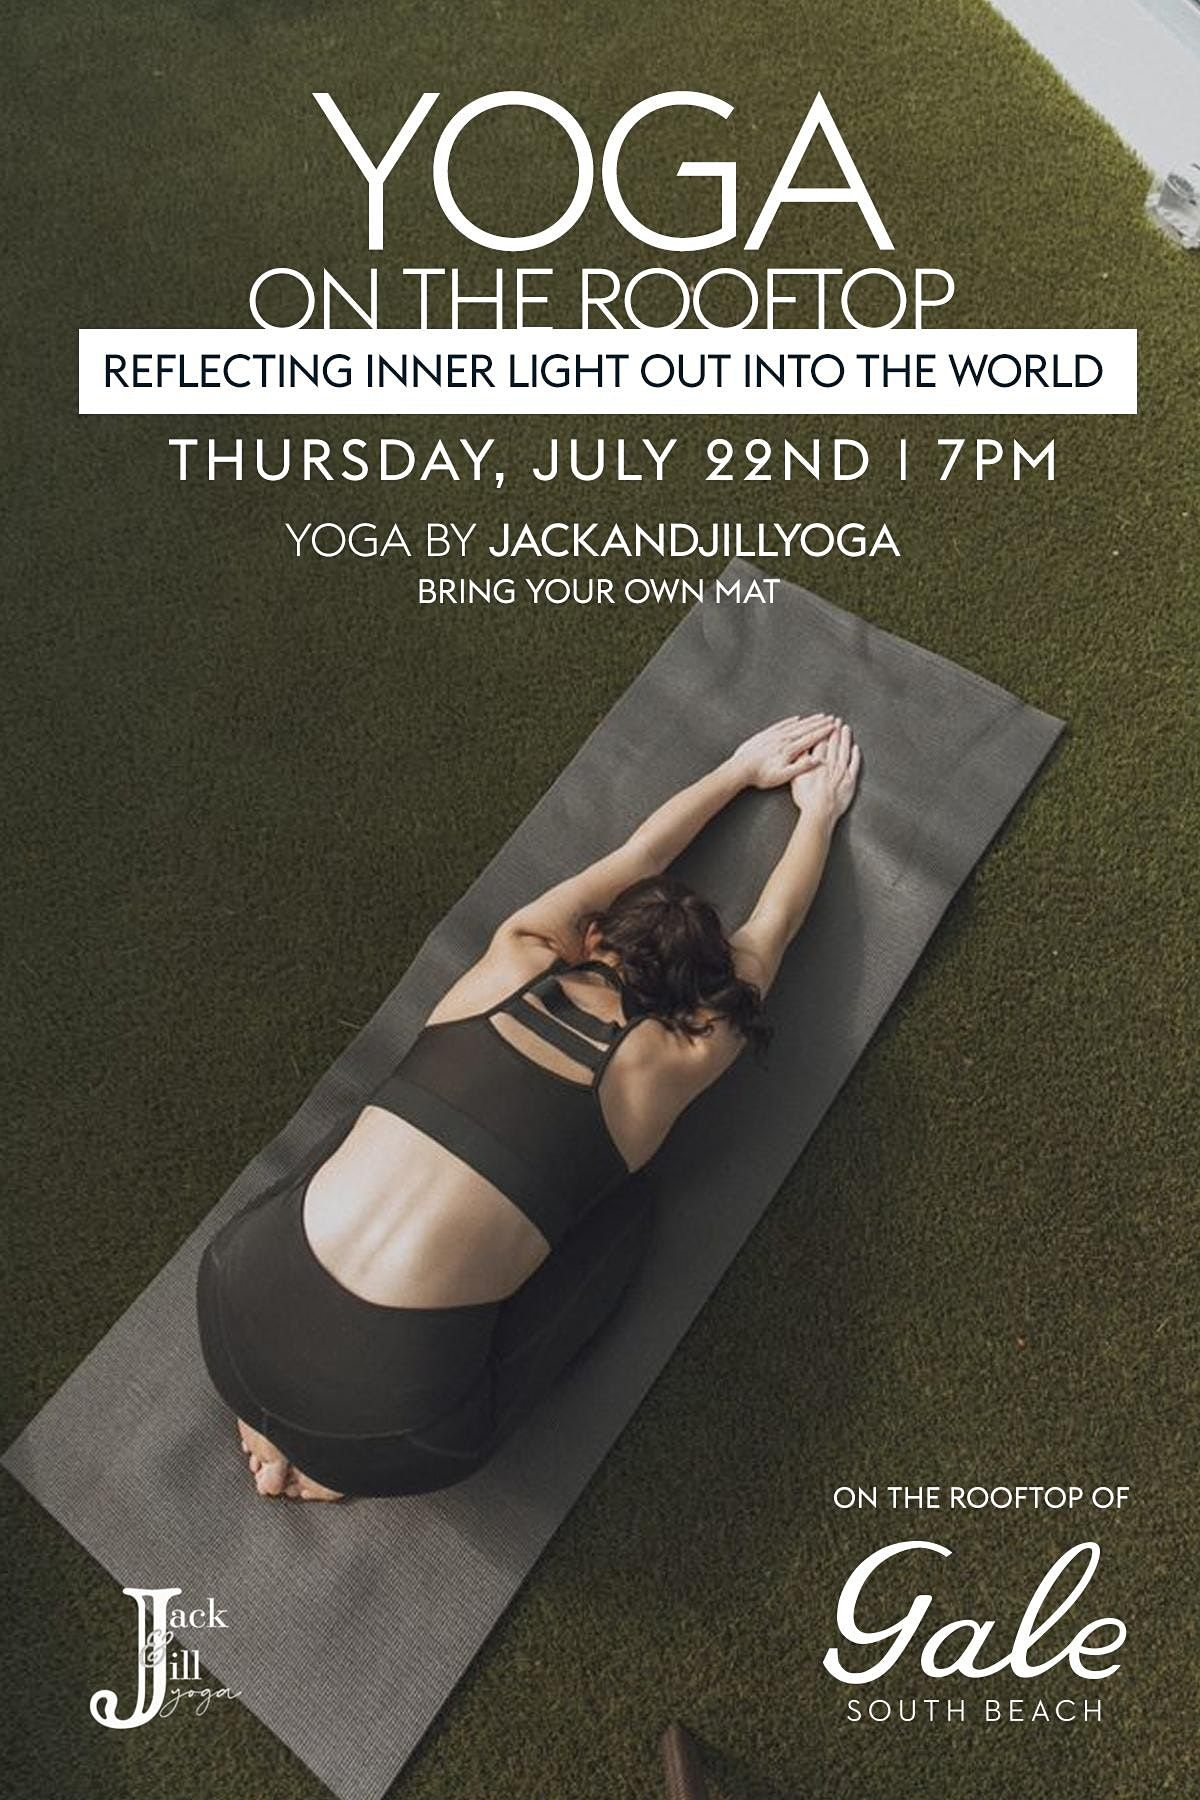 Yoga on the Rooftop - Reflecting Inner Light Out Into The World